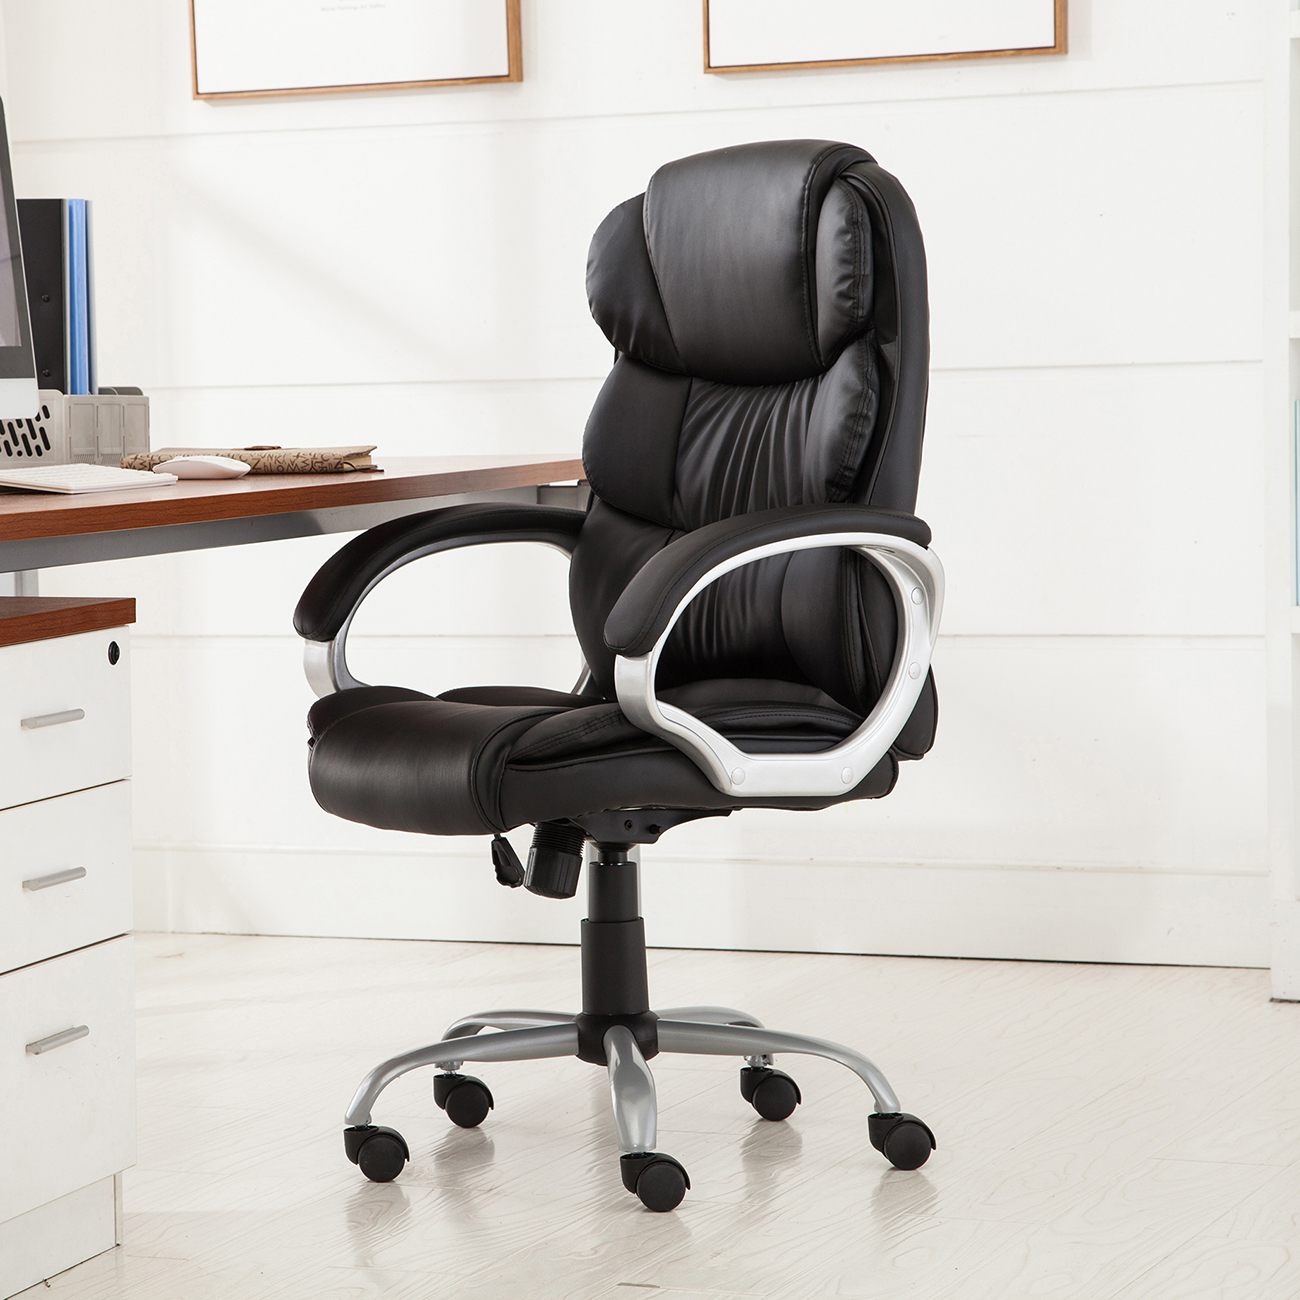 PU-Leather-Office-Rolling-Computer-Chair-Black-Mocha-High-Back-Executive-Desk thumbnail 5